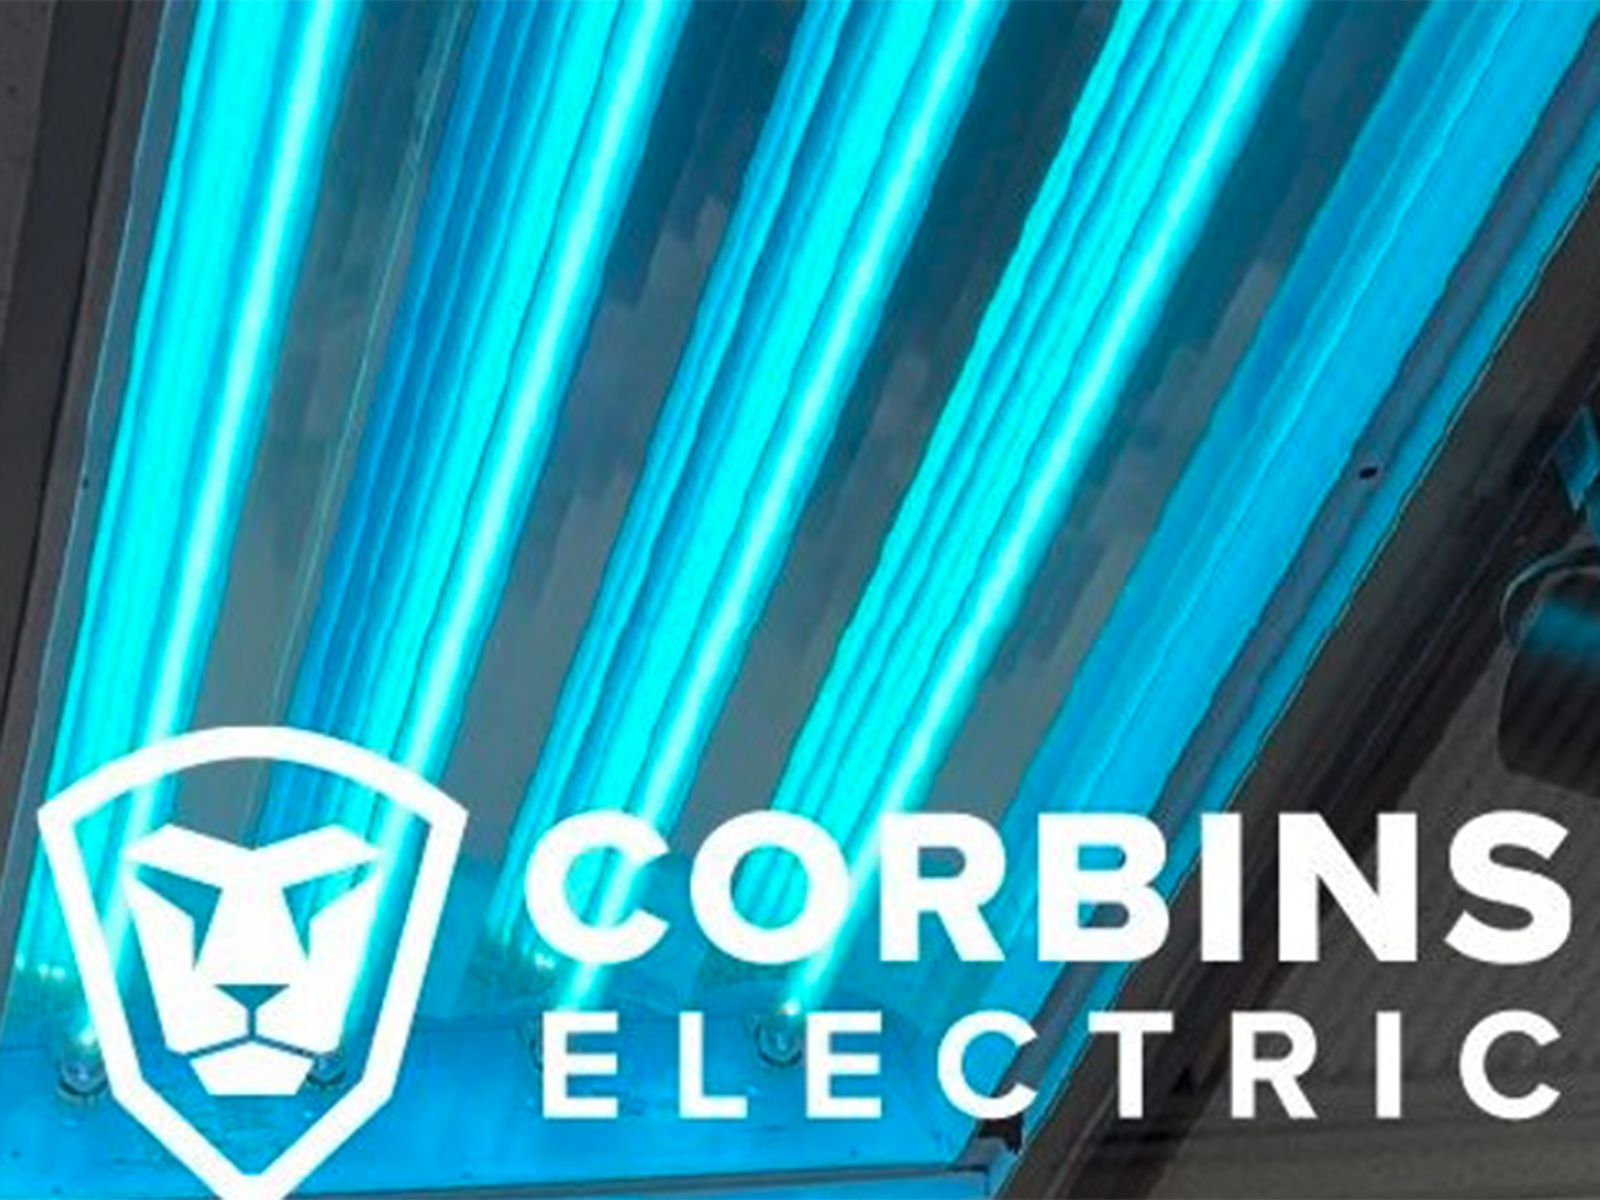 Corbins Electric Offering the First Commercial-Grade GUV Lighting System in the U.S.